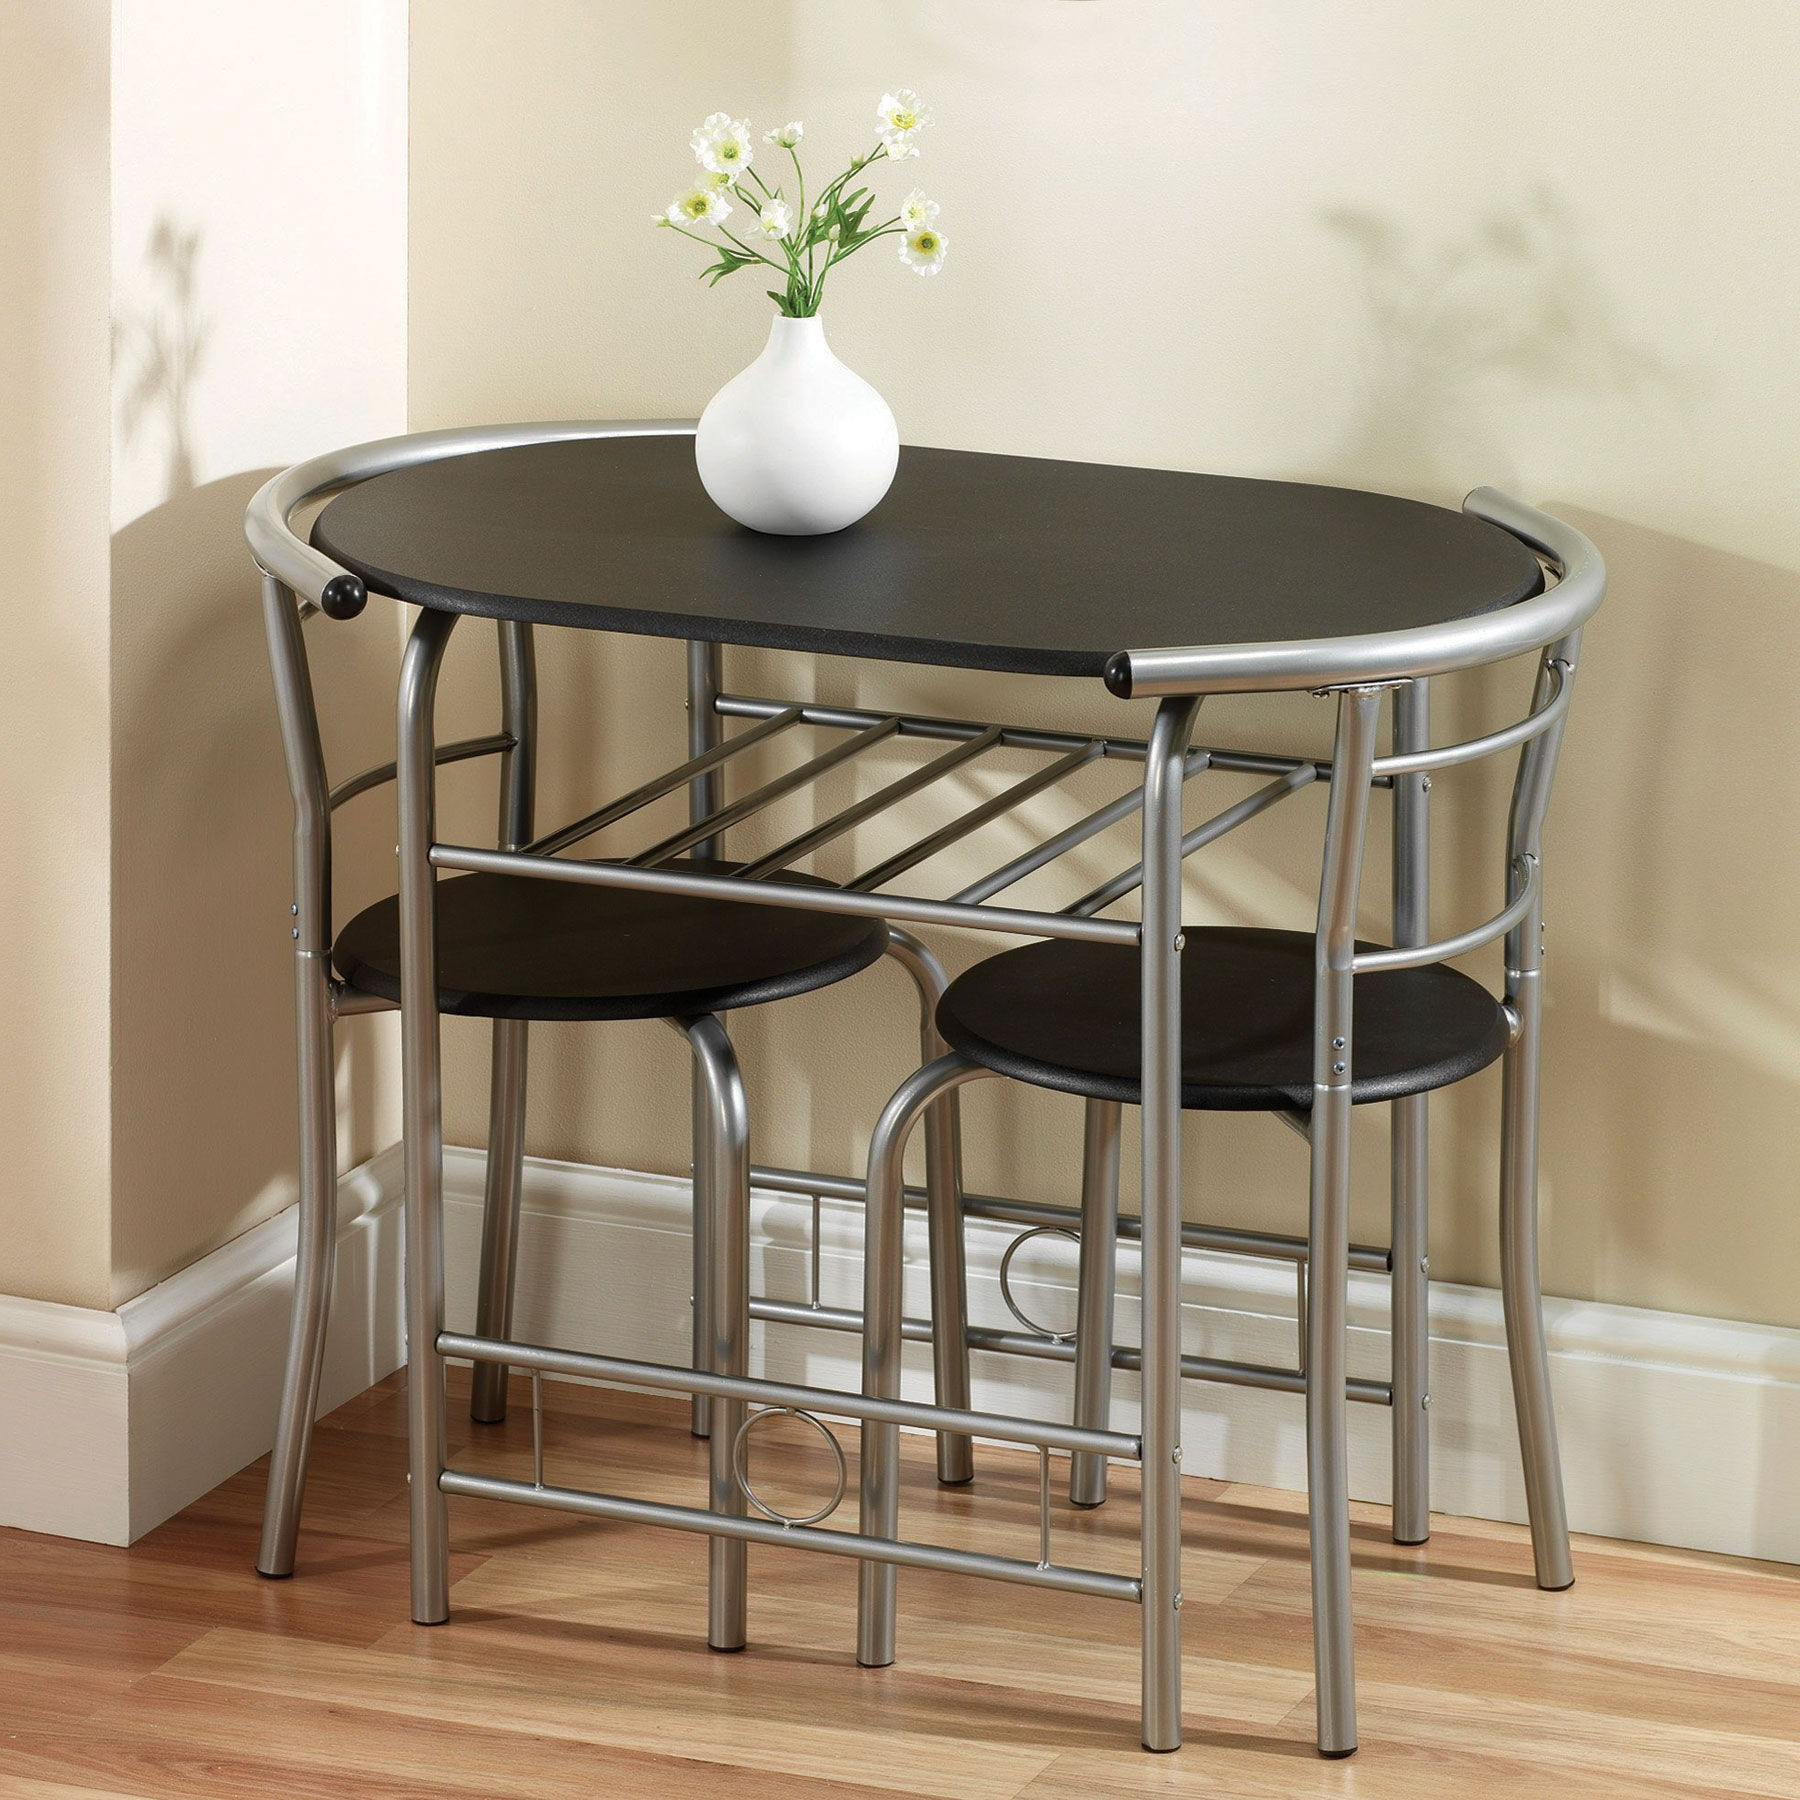 Nutter 3 Piece Dining Sets Throughout Well Known Remarakbale Stainless Steel Space Saving Dining Table And Chairs Set (View 5 of 20)